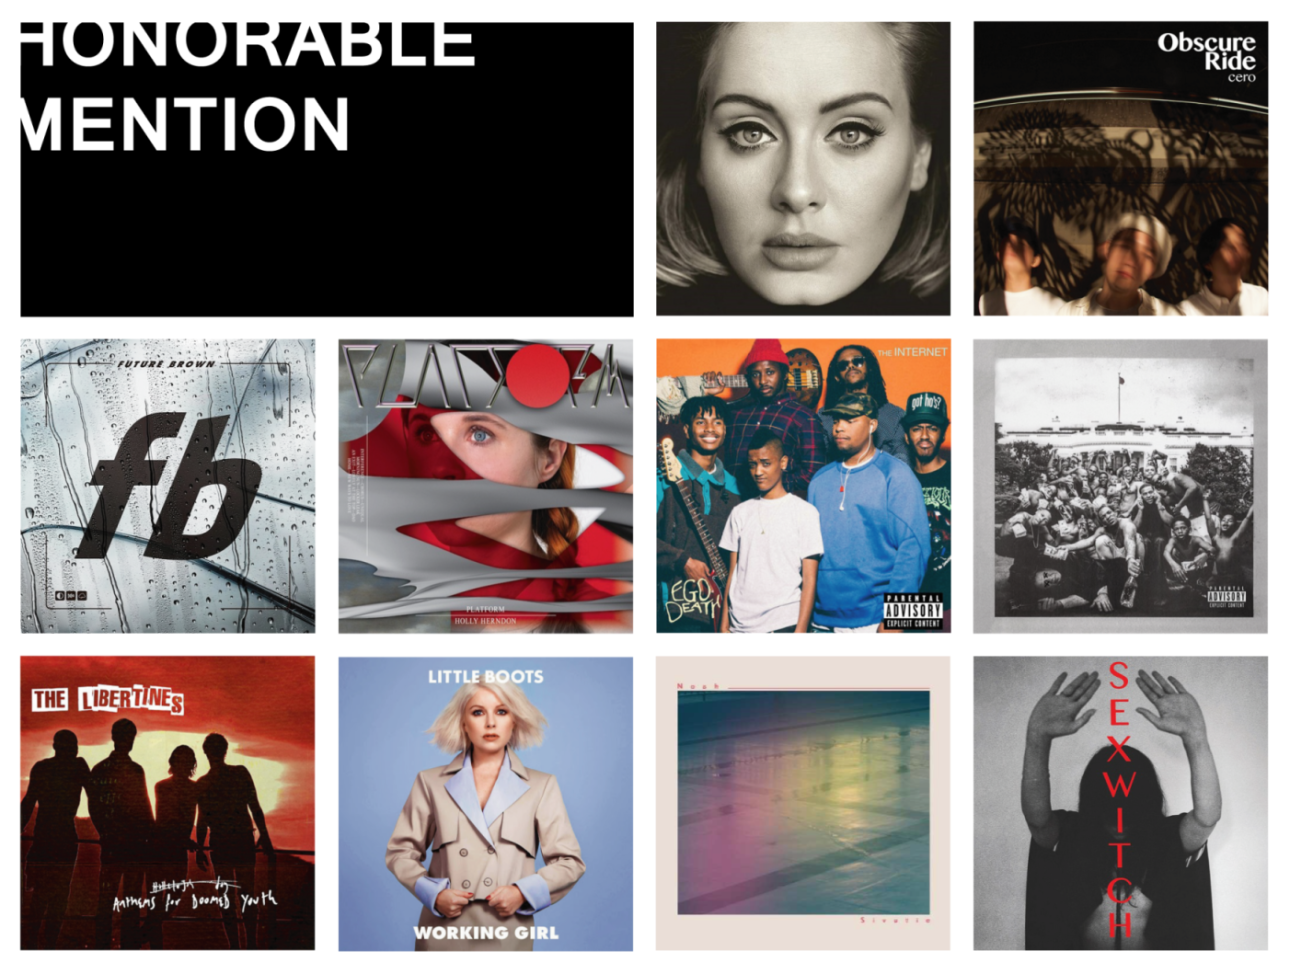 bestalbum2015_honorable3.png